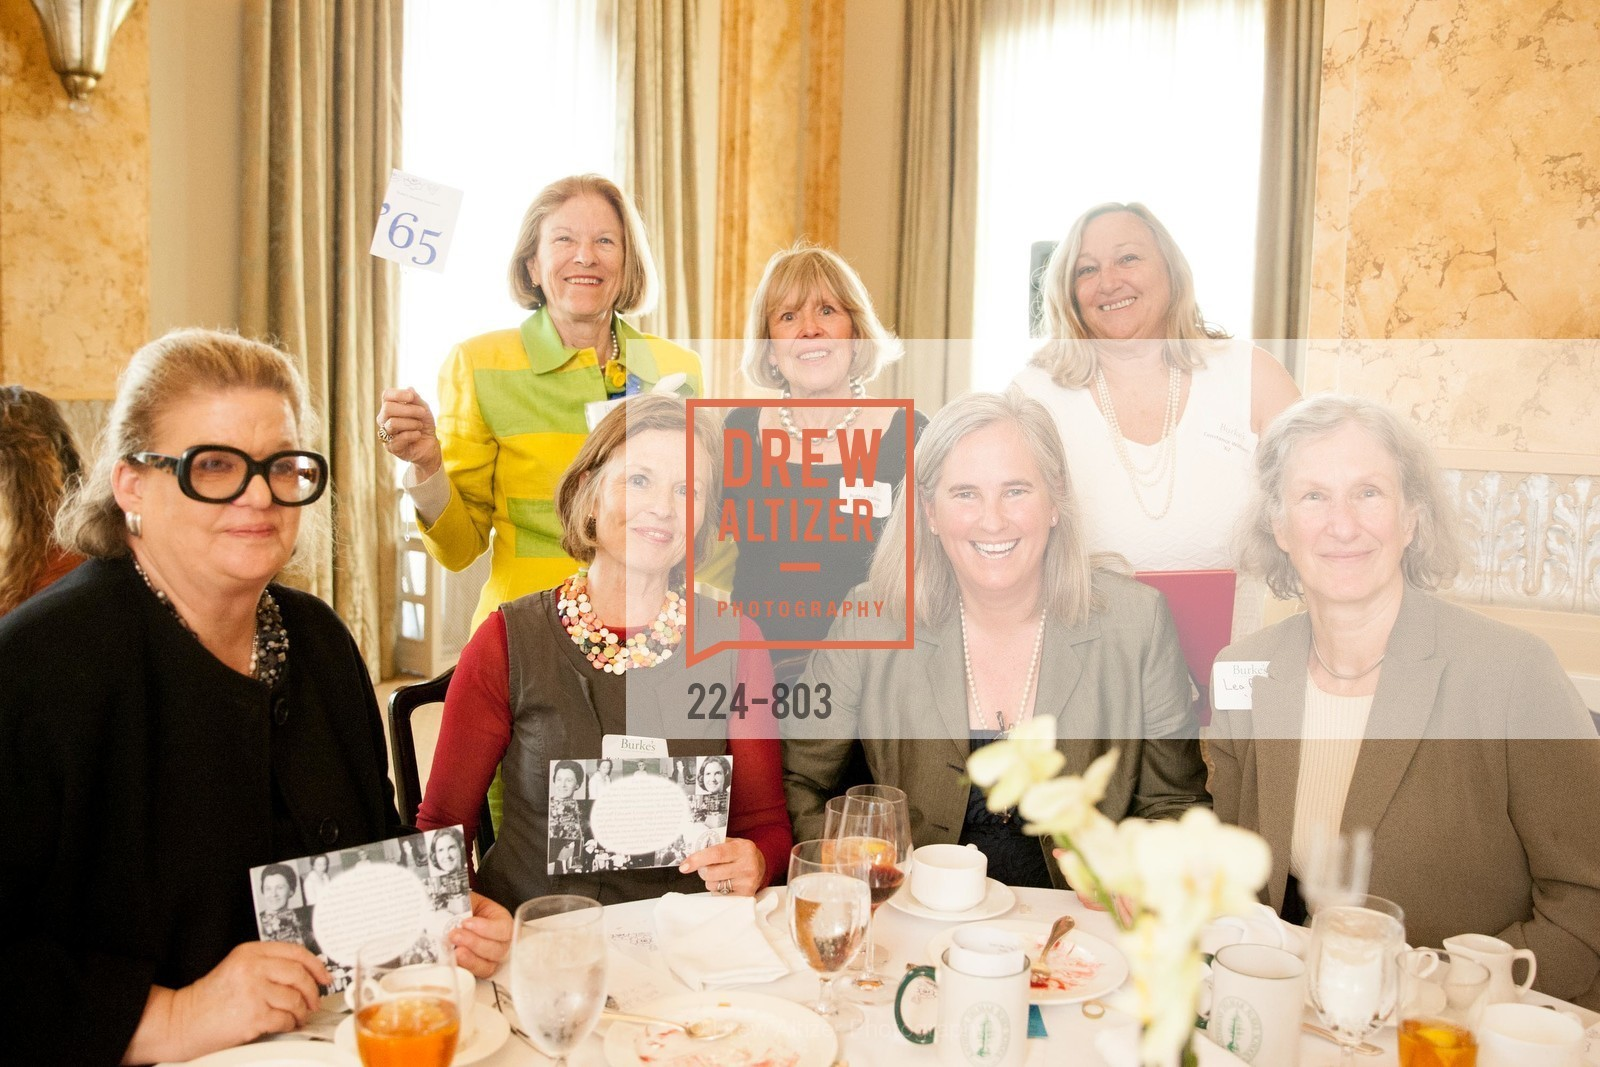 Kathryn Johnston, Sarah Glassie Griffith, Ruthie Conway, Michele Williams, Constance Williams, BURKE'S Alumnae Luncheon, US, April 24th, 2015,Drew Altizer, Drew Altizer Photography, full-service agency, private events, San Francisco photographer, photographer california